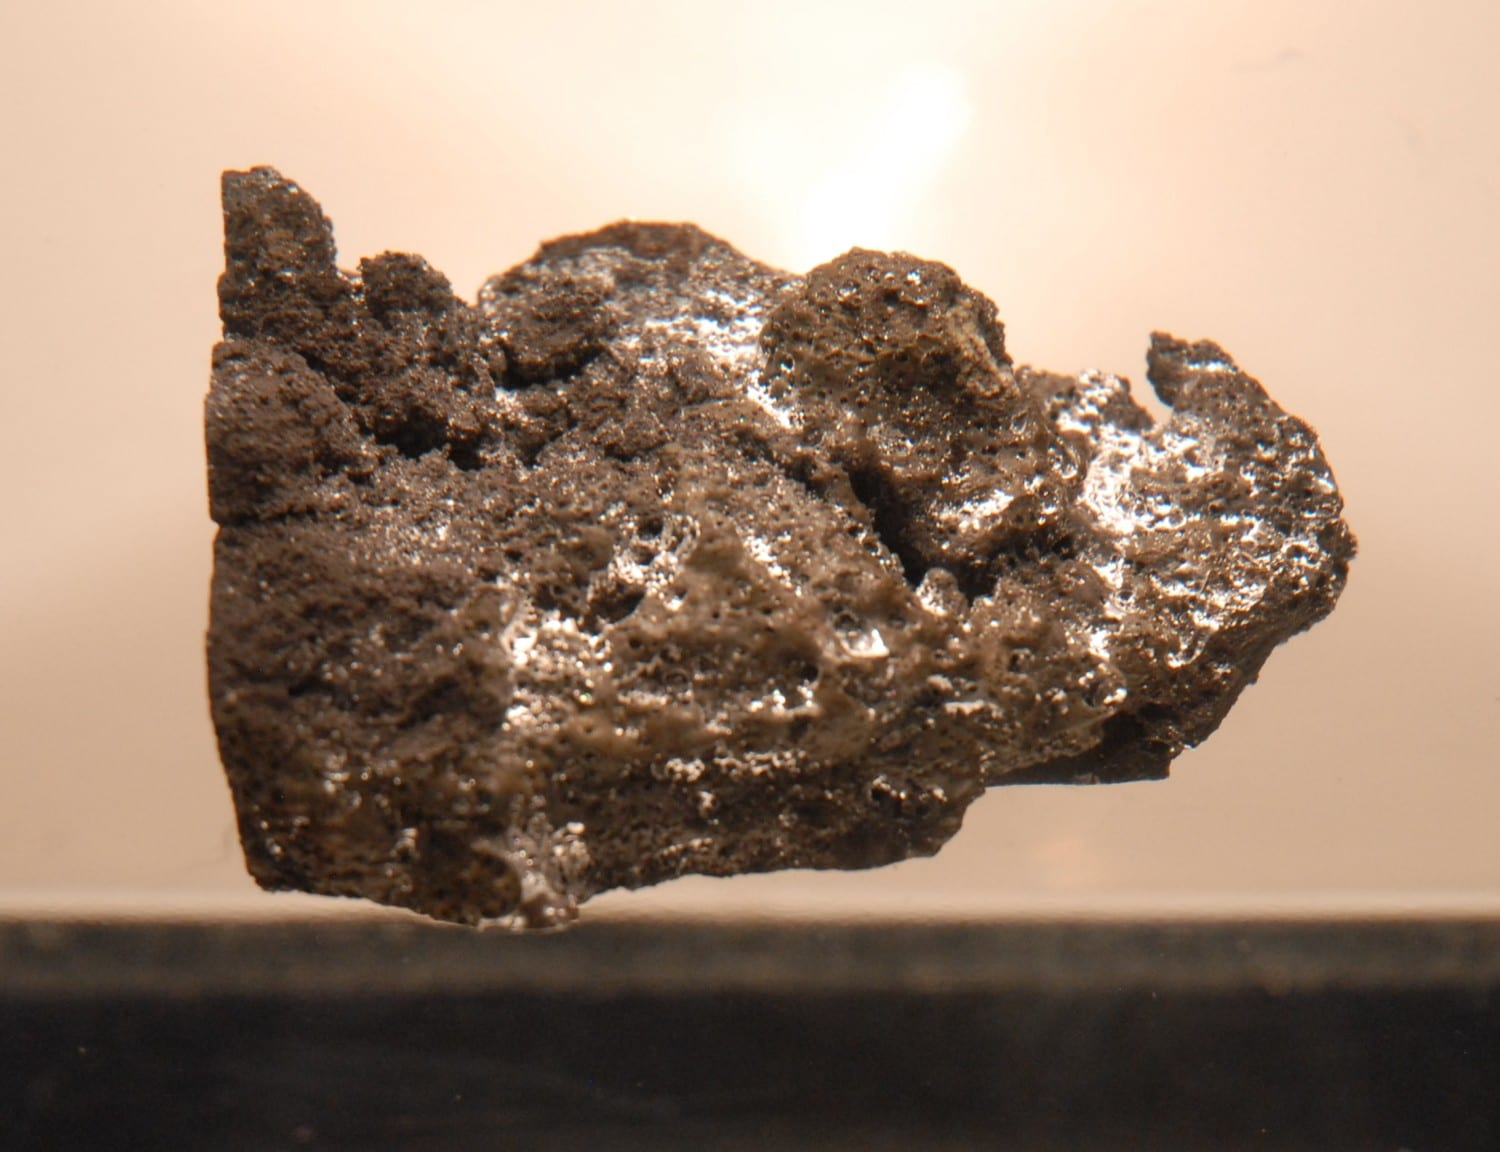 moon rocks photo